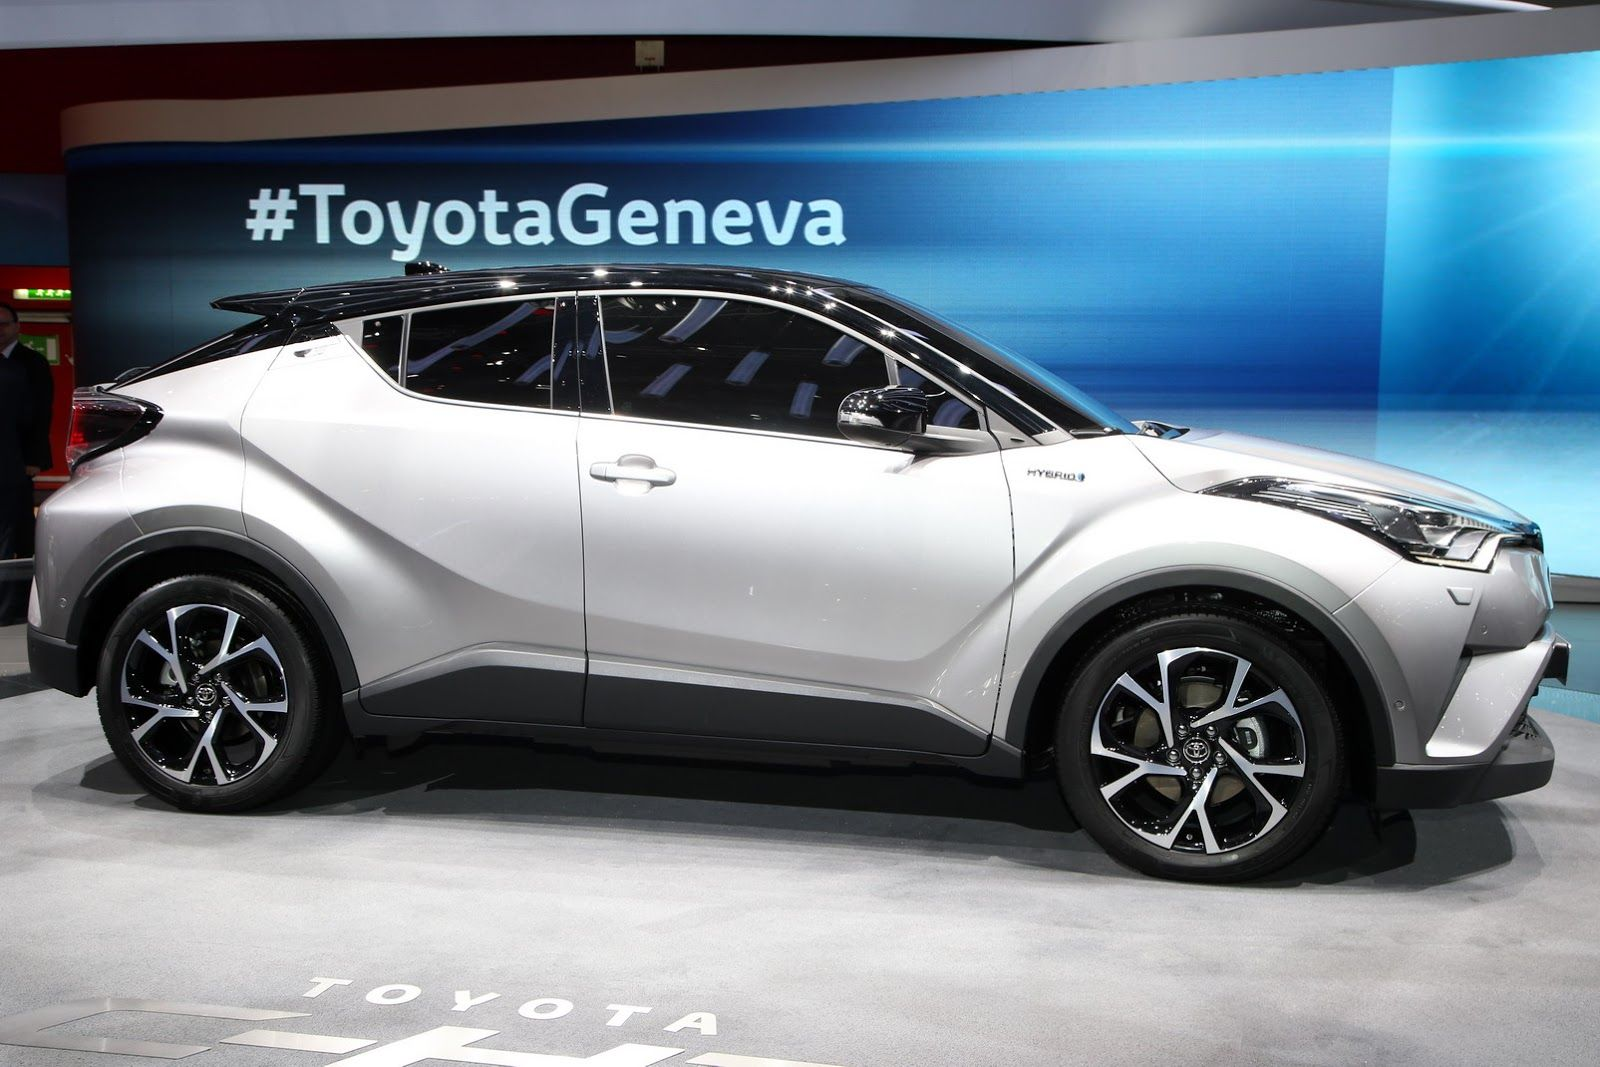 New Toyota C Hr Gets 1 2l Turbo 2 0l And 1 8l Hybrid Powertrains New Pics Carscoops Toyota C Hr Subcompact Suv Toyota